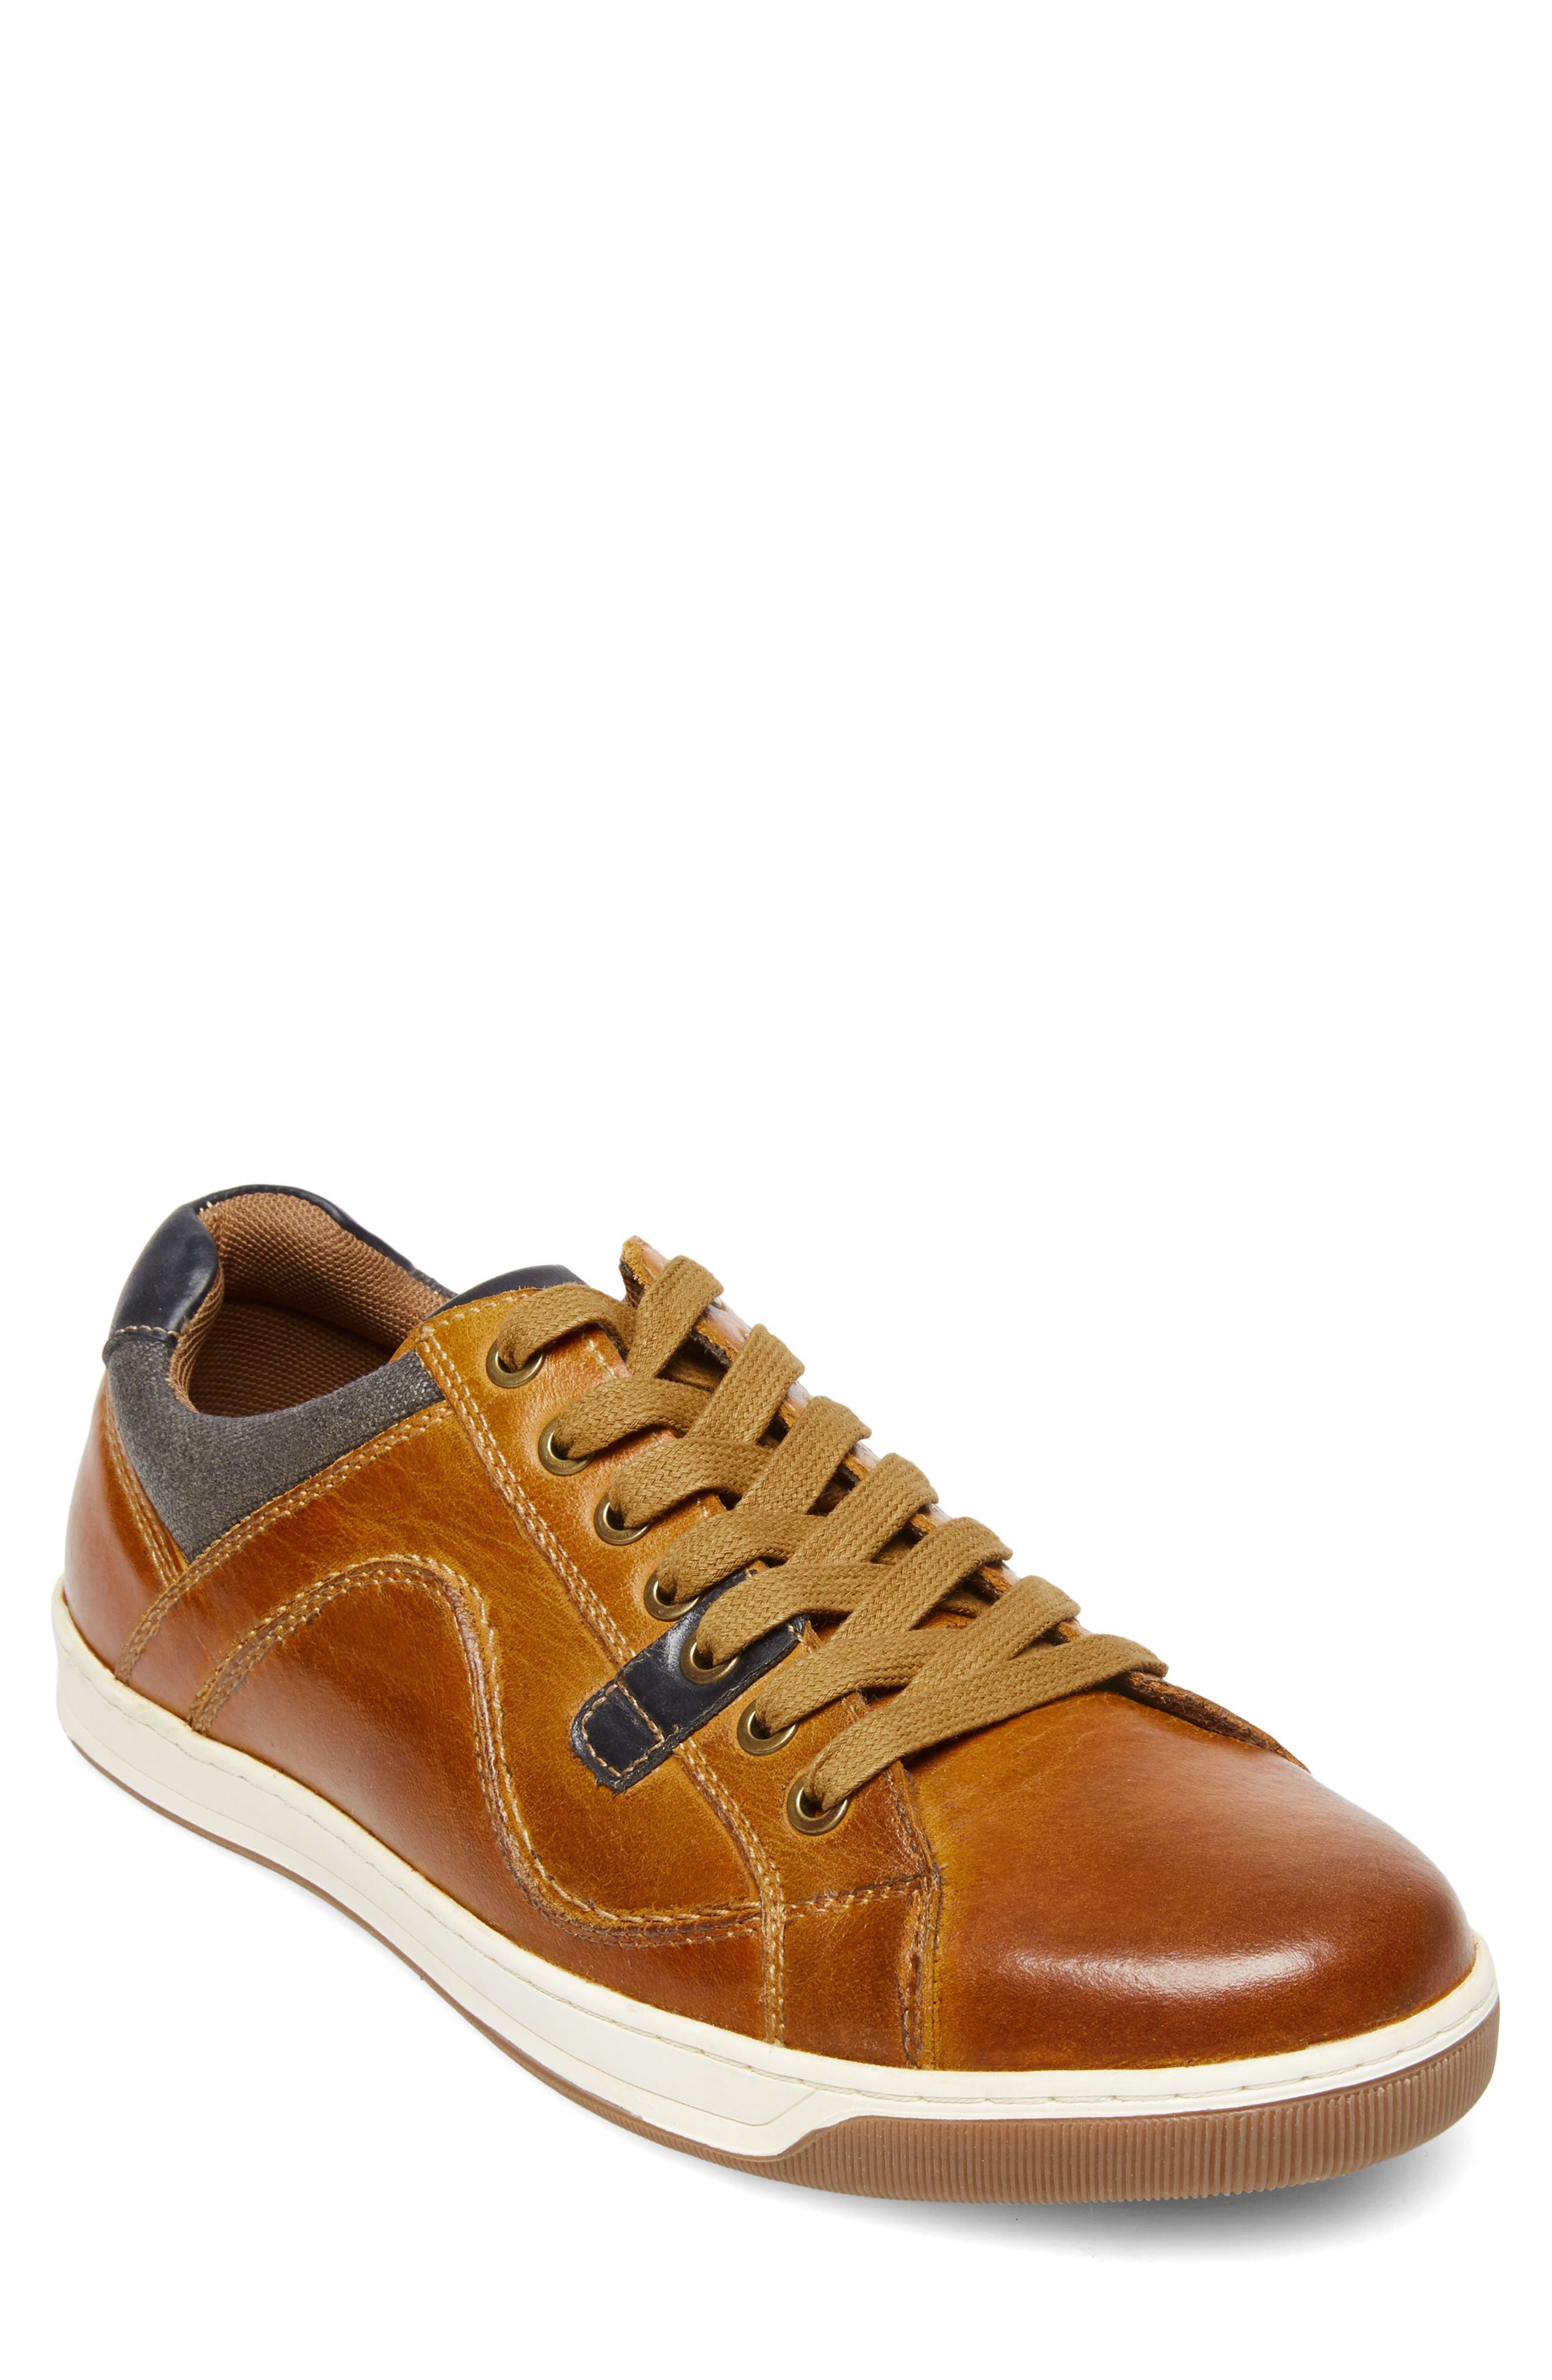 Chater Low Top Sneaker,                             Main thumbnail 2, color,